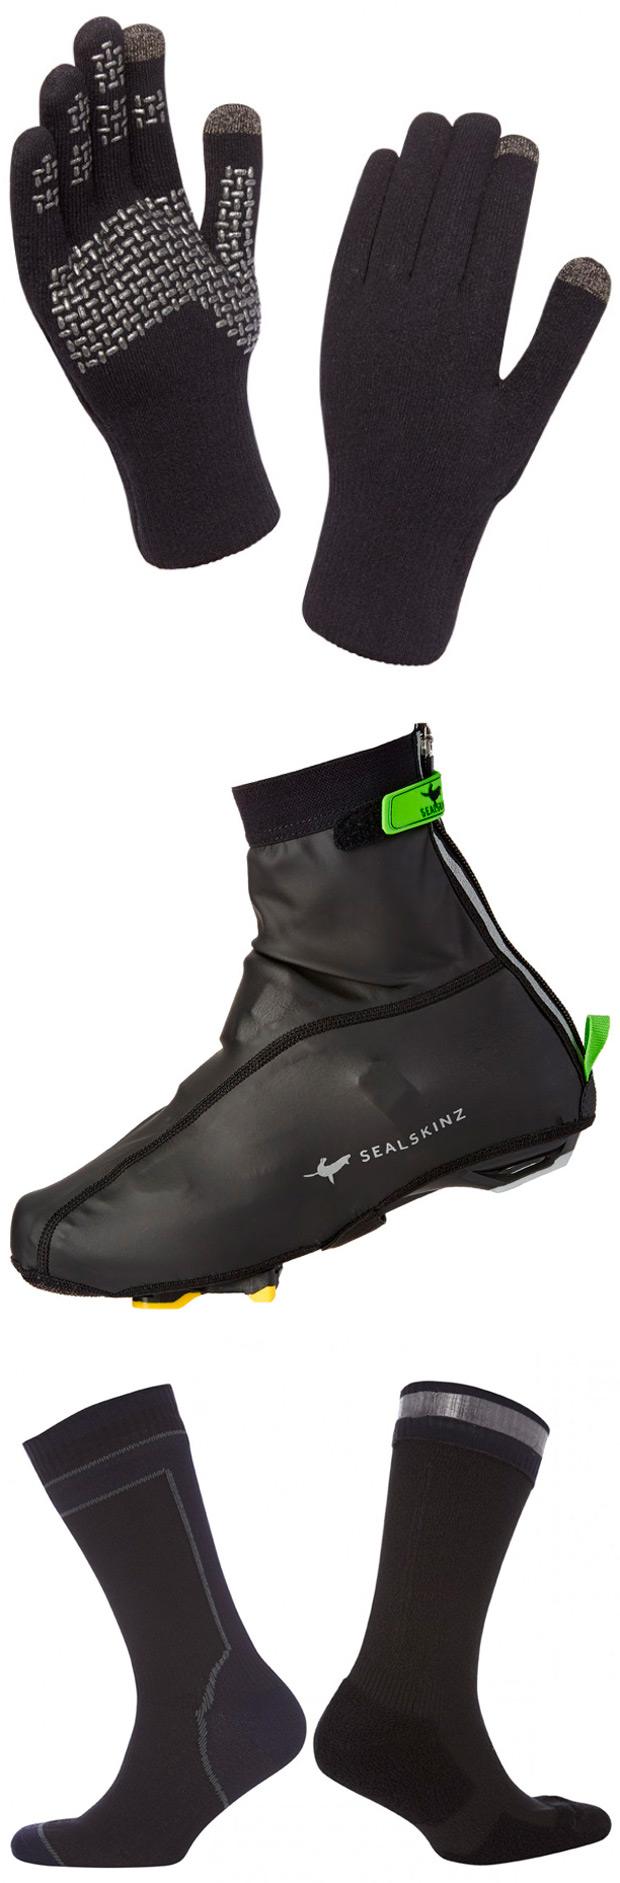 La prendas impermeables de Sealskinz, ya disponibles en España gracias a Bike Office